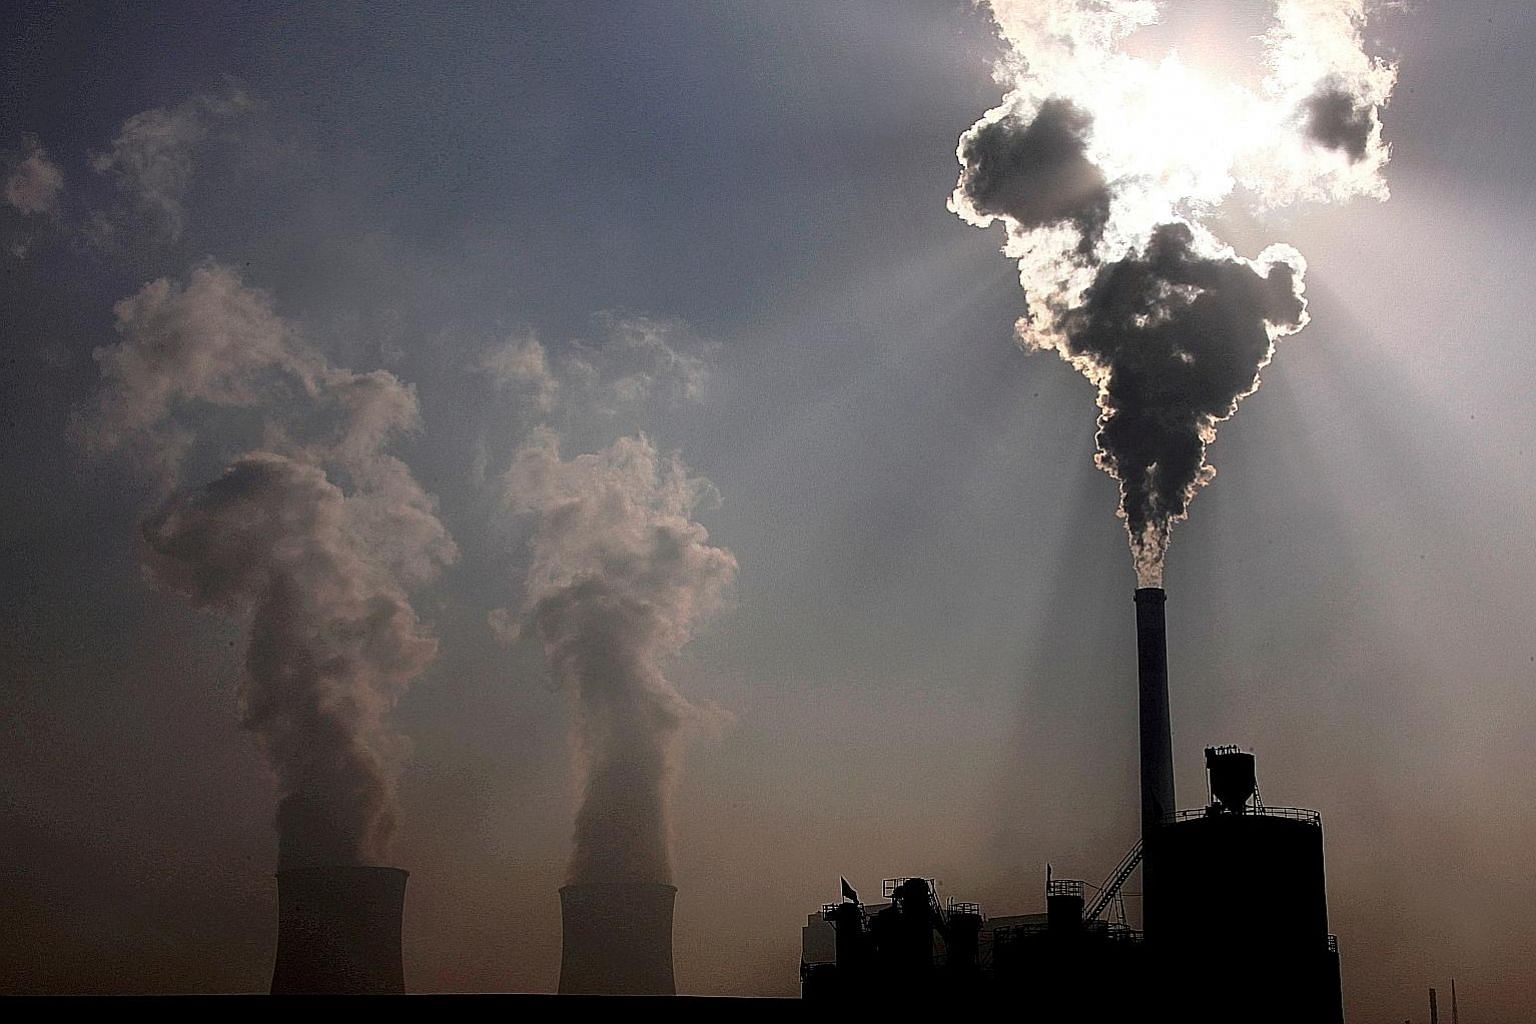 China is the world's most populous nation and top energy user, but Beijing has been trying to limit the use of the dirtiest fossil fuel in recent years while scaling up renewable energy production. PHOTO: REUTERS